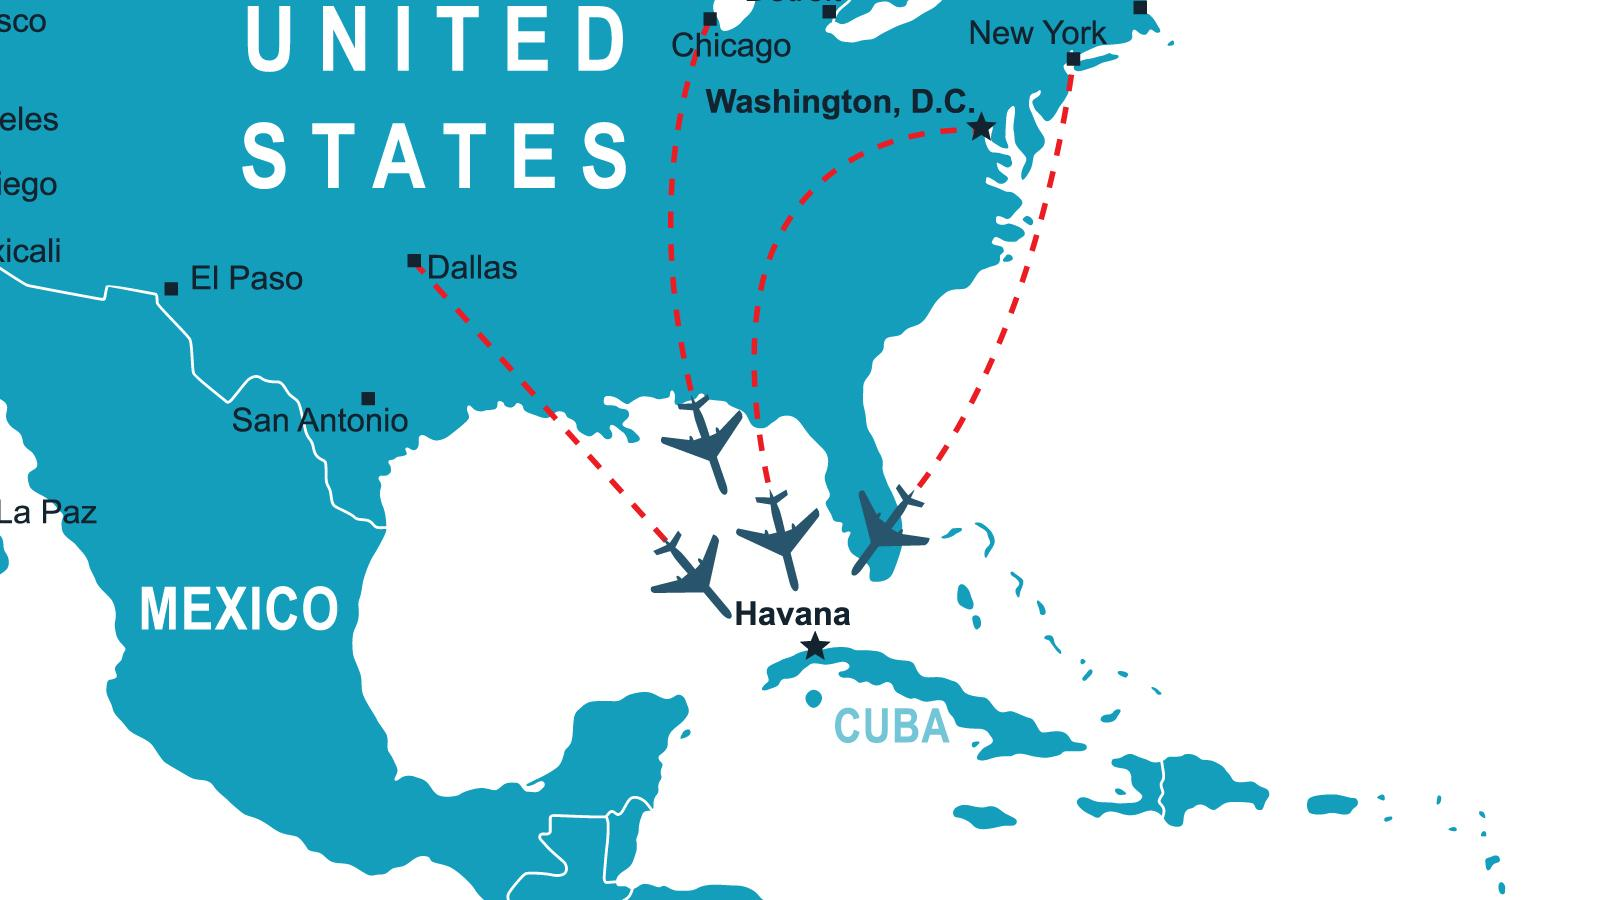 U.S. And Cuba Setting Up New Air Travel Arrangement